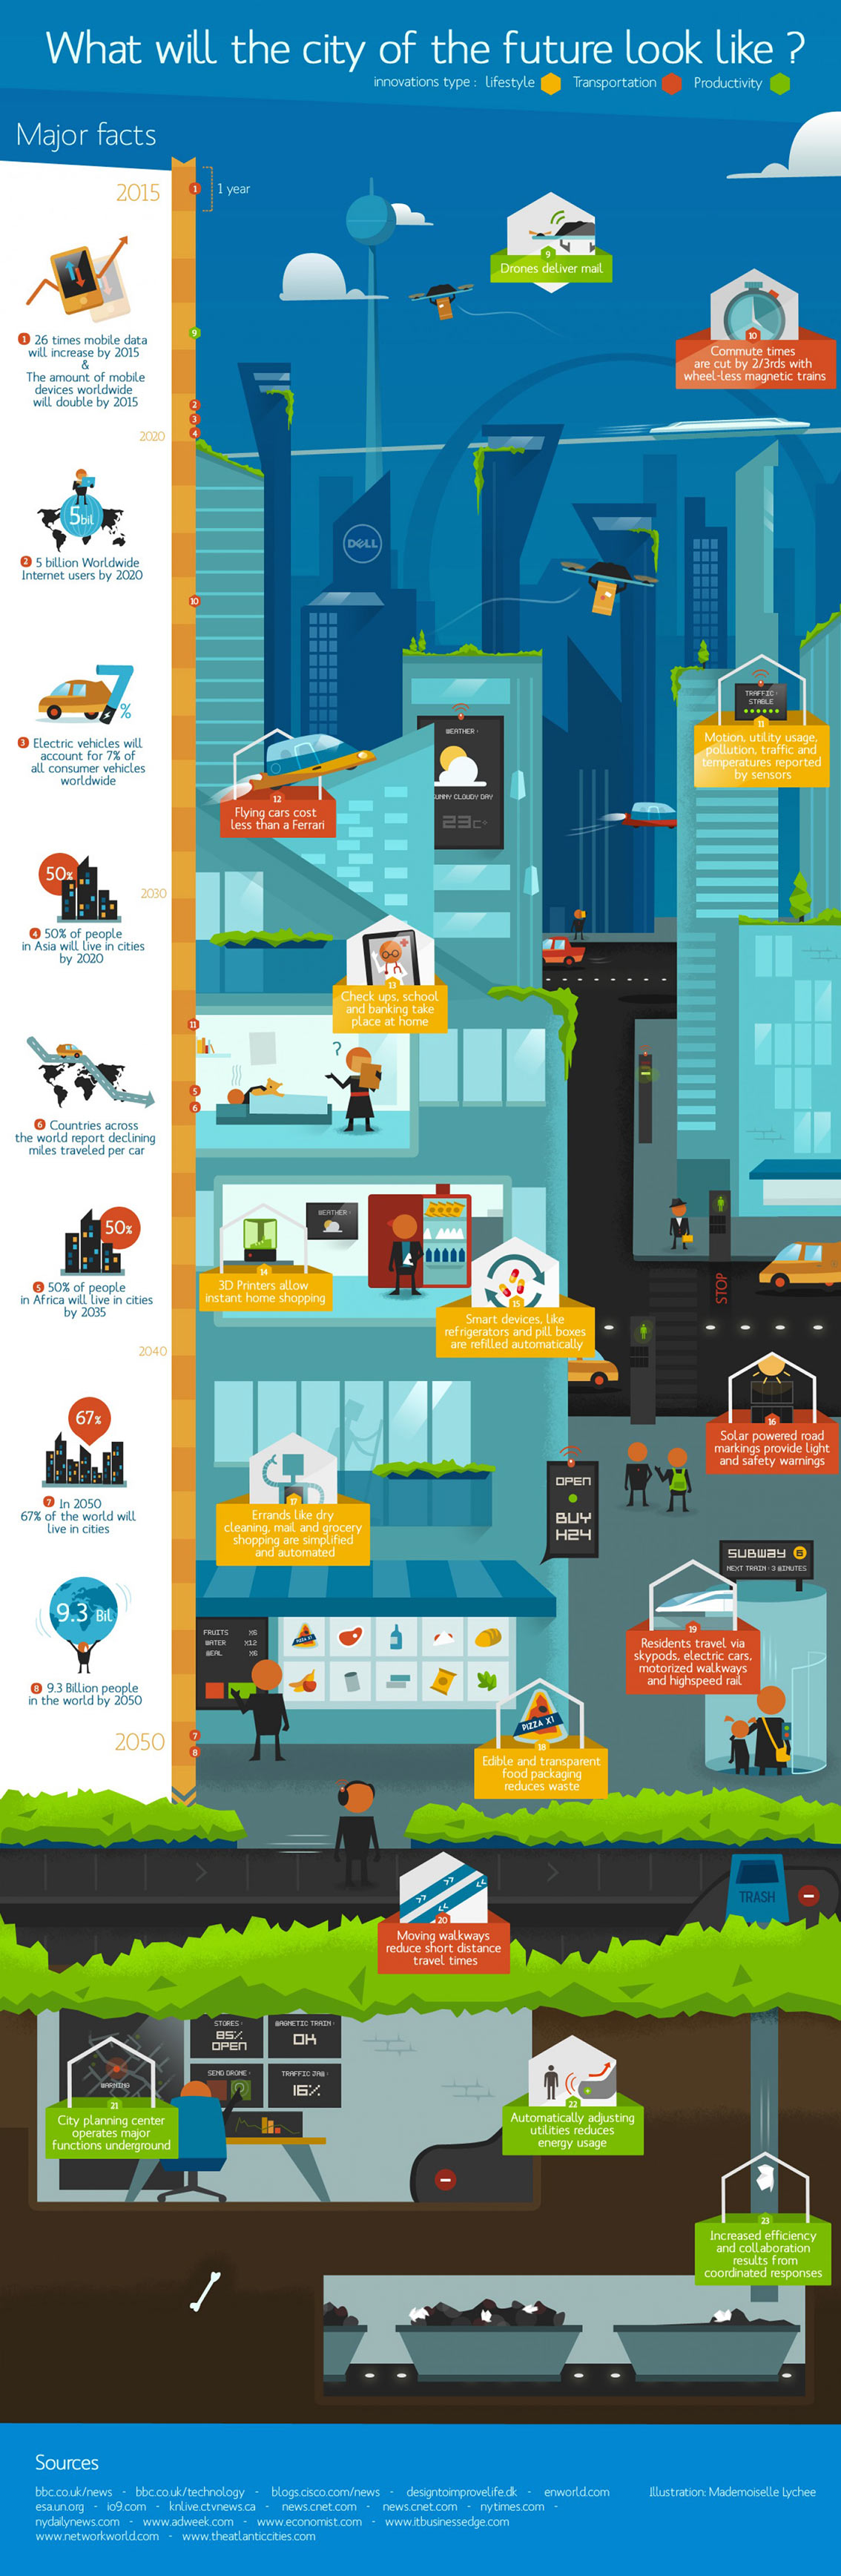 What Will The City Of The Future Look Like Infographic